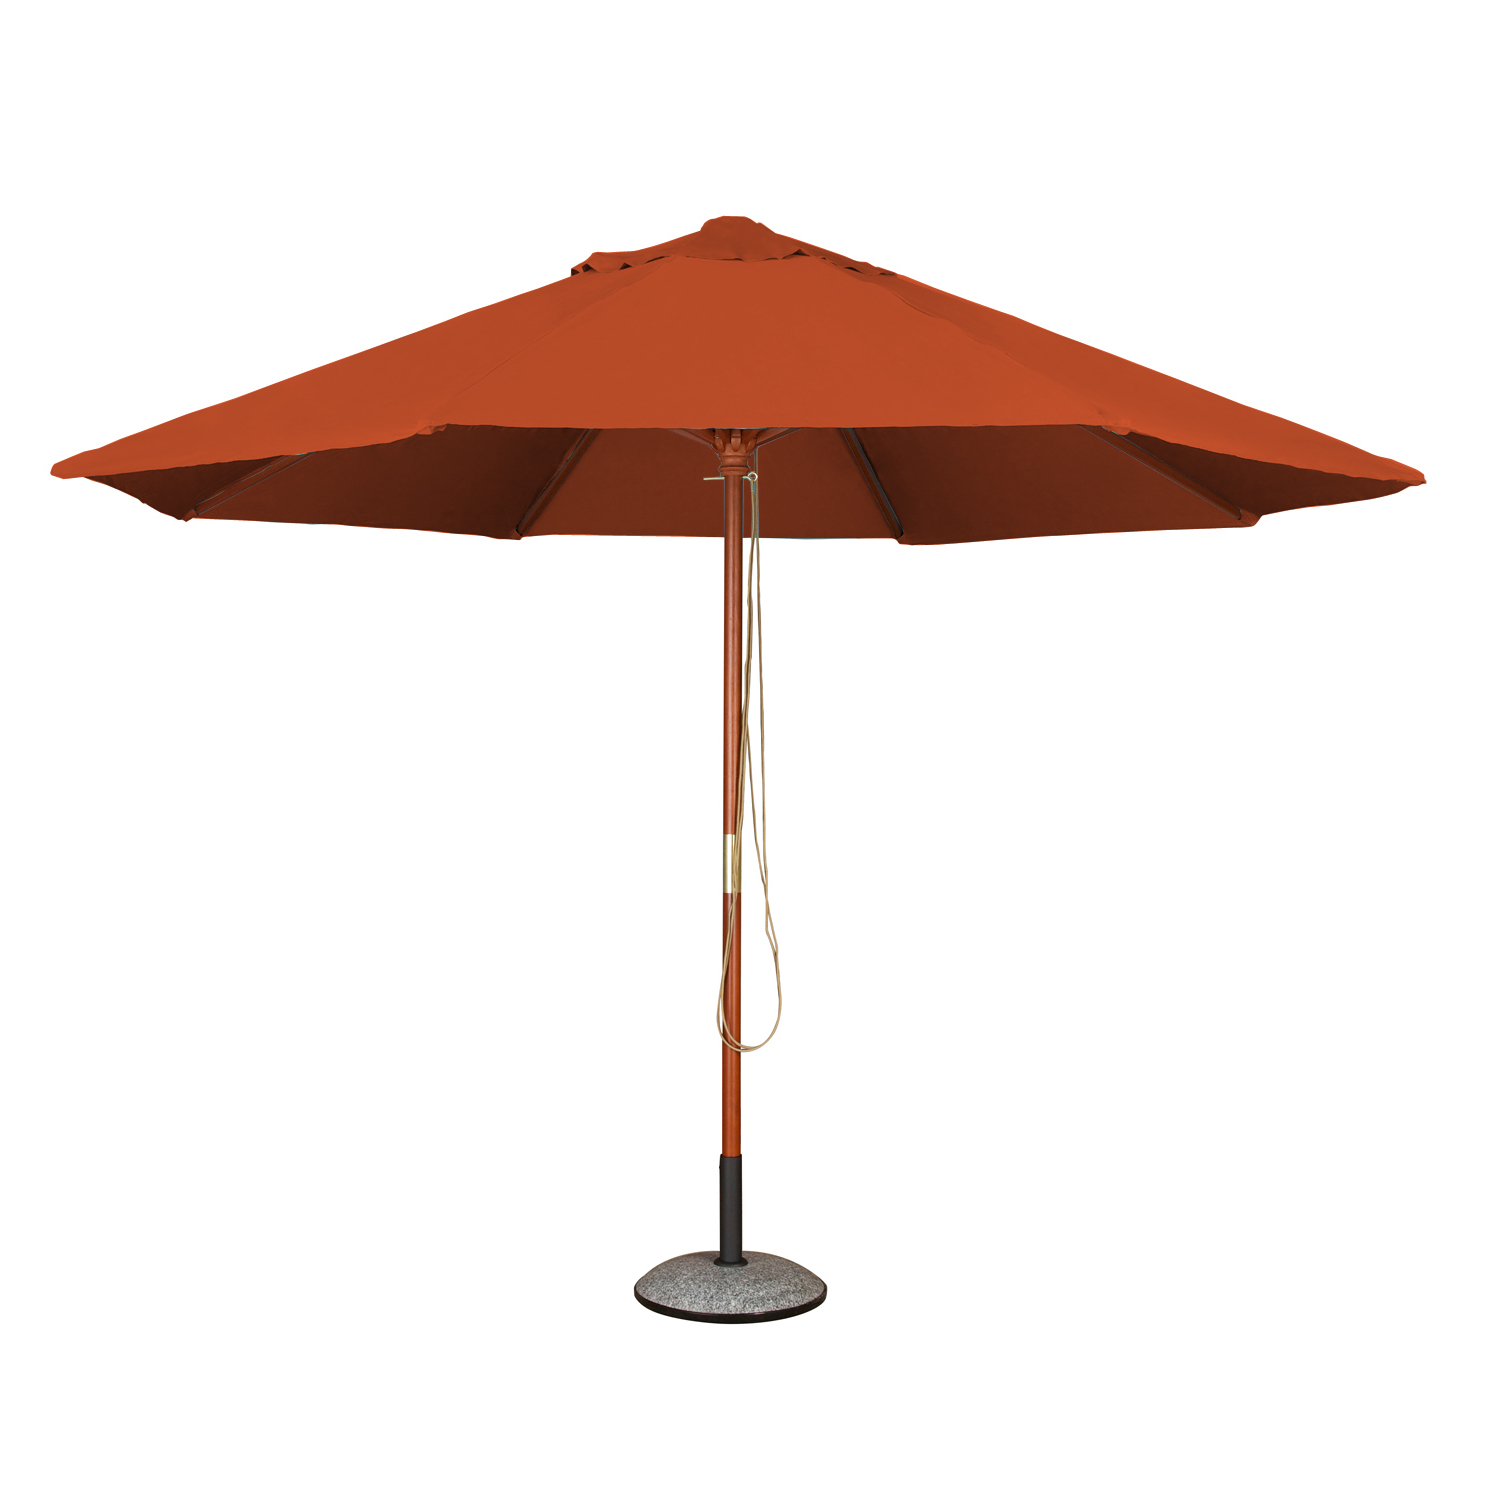 2019 Monty Market Umbrellas With Details About Garden Parasol (2m Terracotta) 6 Rib Patio Canopy Umbrella (View 11 of 20)